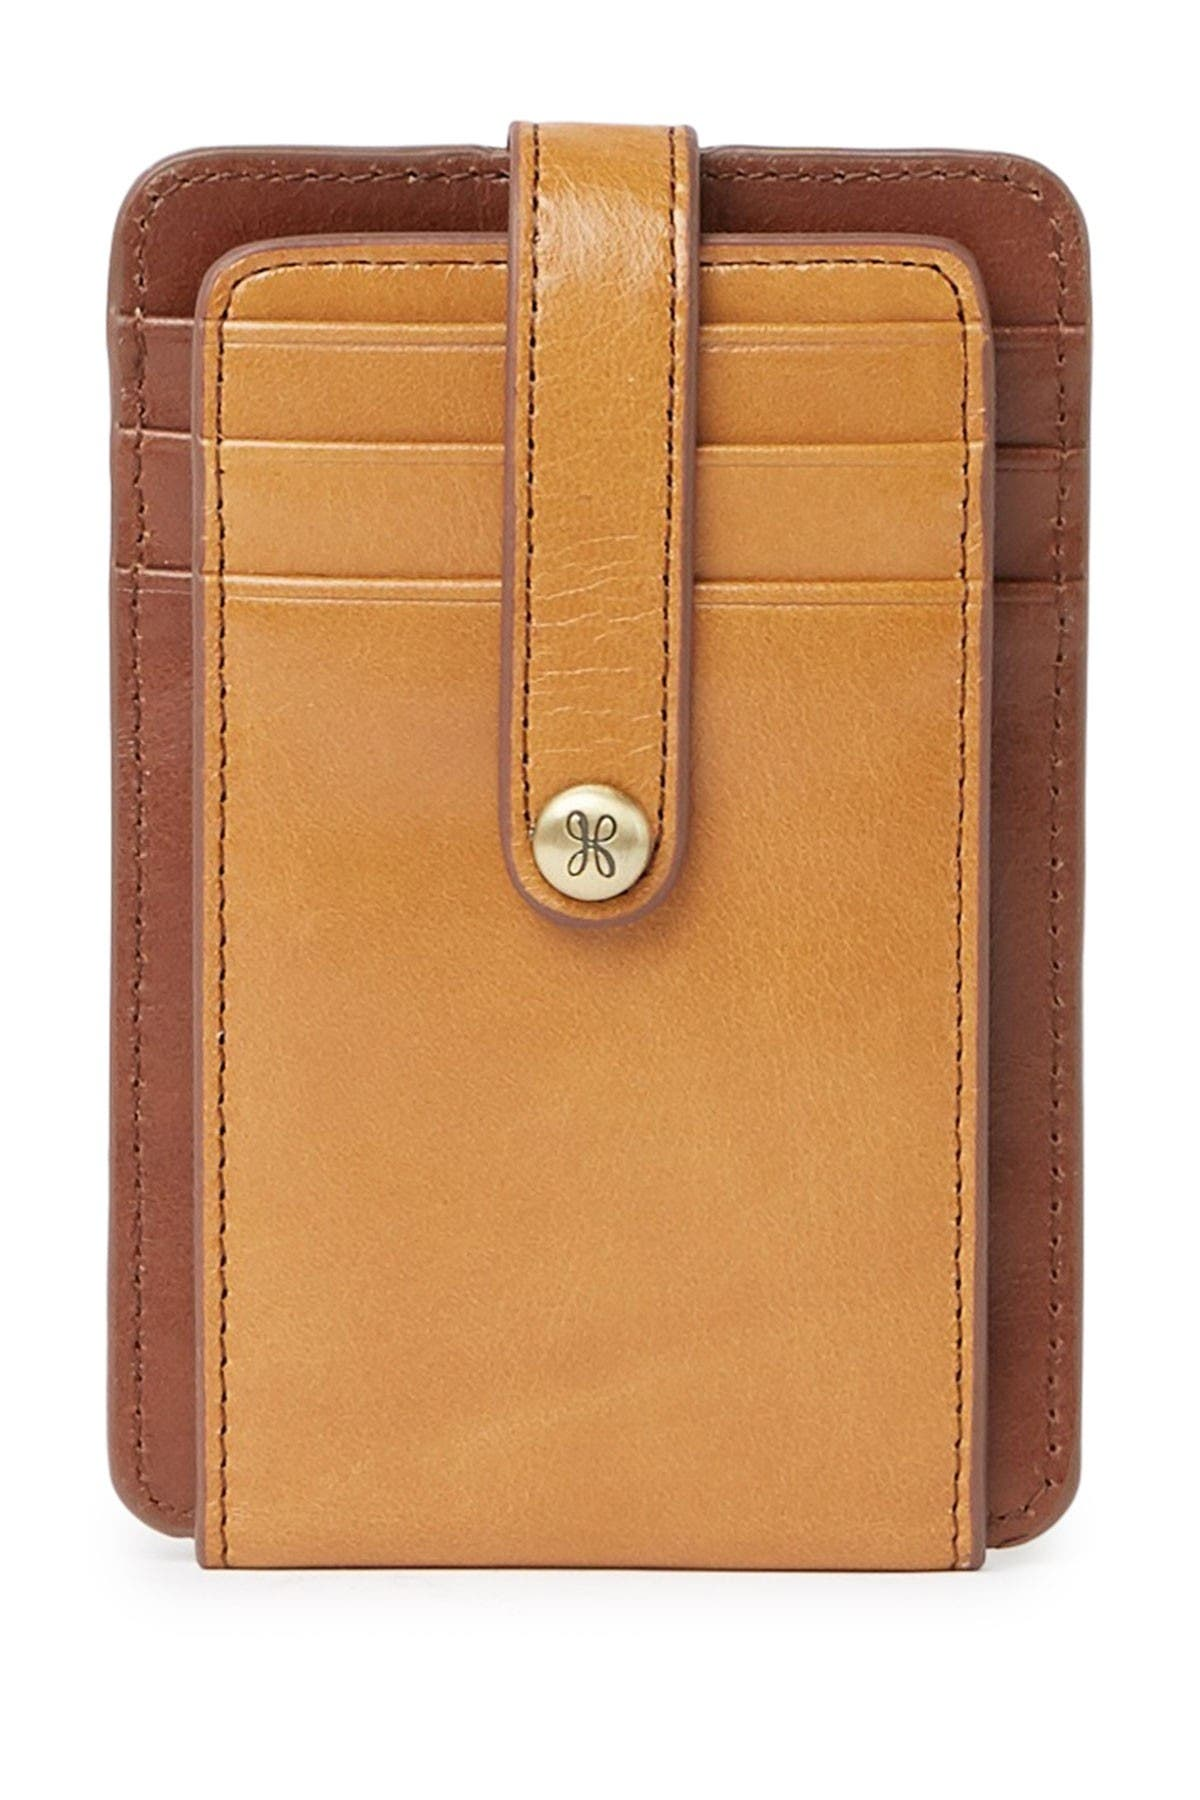 Image of Hobo Access Leather Card Holder